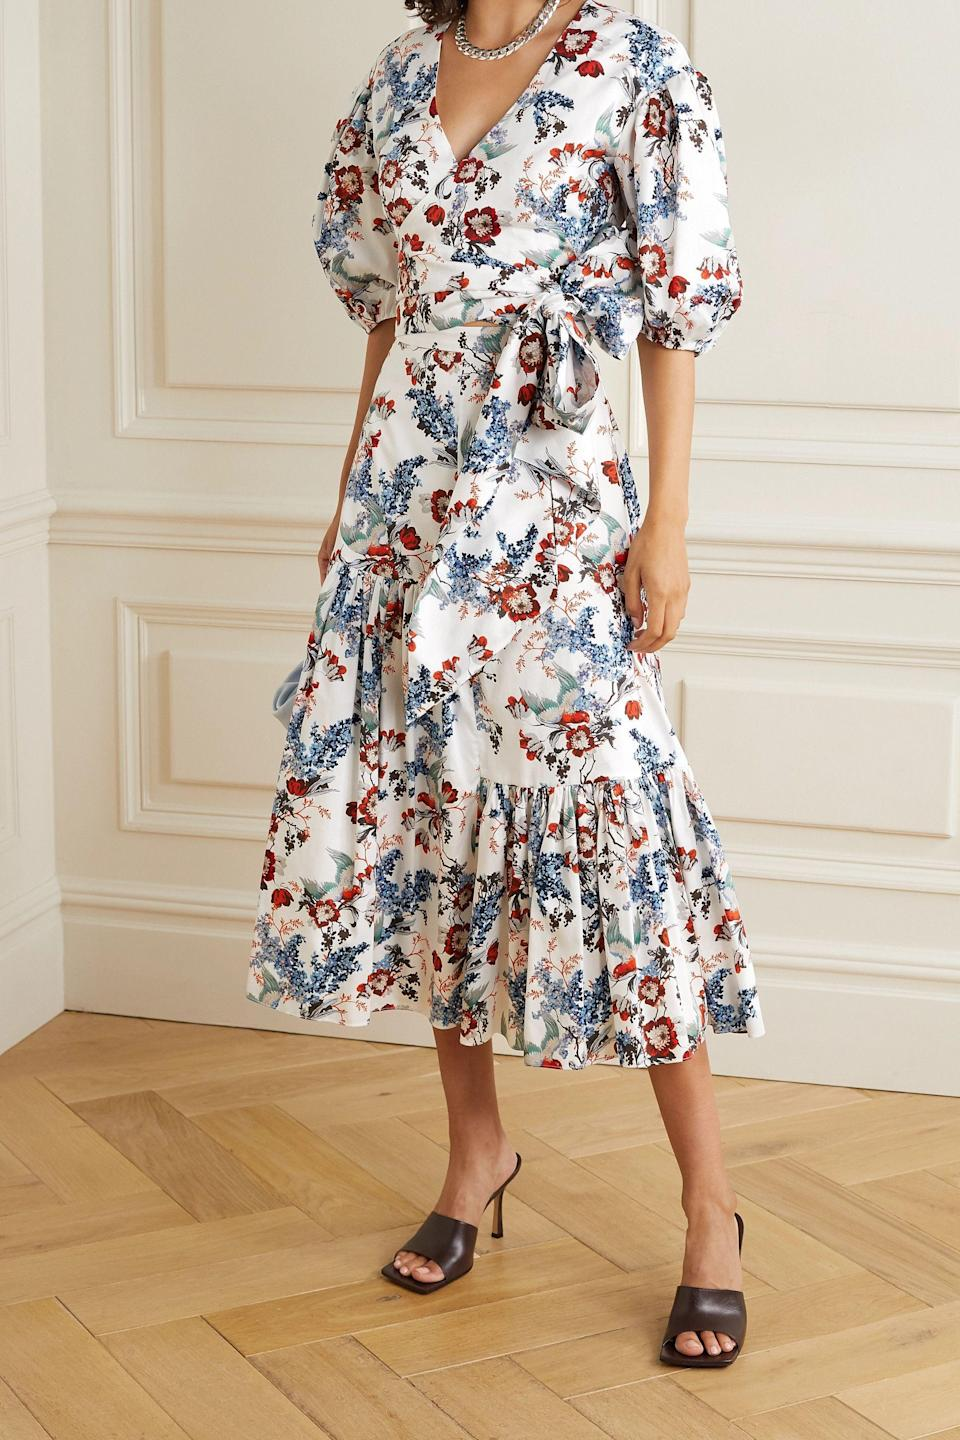 """<p><strong>ERDEM</strong></p><p>net-a-porter.com</p><p><strong>$495.00</strong></p><p><a href=""""https://go.redirectingat.com?id=74968X1596630&url=https%3A%2F%2Fwww.net-a-porter.com%2Fen-us%2Fshop%2Fproduct%2Ferdem%2Fclothing%2Fblouses%2Fcyllene-cropped-floral-print-cotton-poplin-wrap-top%2F8008779905312828&sref=https%3A%2F%2Fwww.cosmopolitan.com%2Fstyle-beauty%2Ffashion%2Fg36618322%2Fnet-a-porter-spring-sale-2021%2F"""" rel=""""nofollow noopener"""" target=""""_blank"""" data-ylk=""""slk:Shop Now"""" class=""""link rapid-noclick-resp"""">Shop Now</a></p><p>You can easily dress this shirt up or down with a pair of jeans or a luxe midi!</p>"""